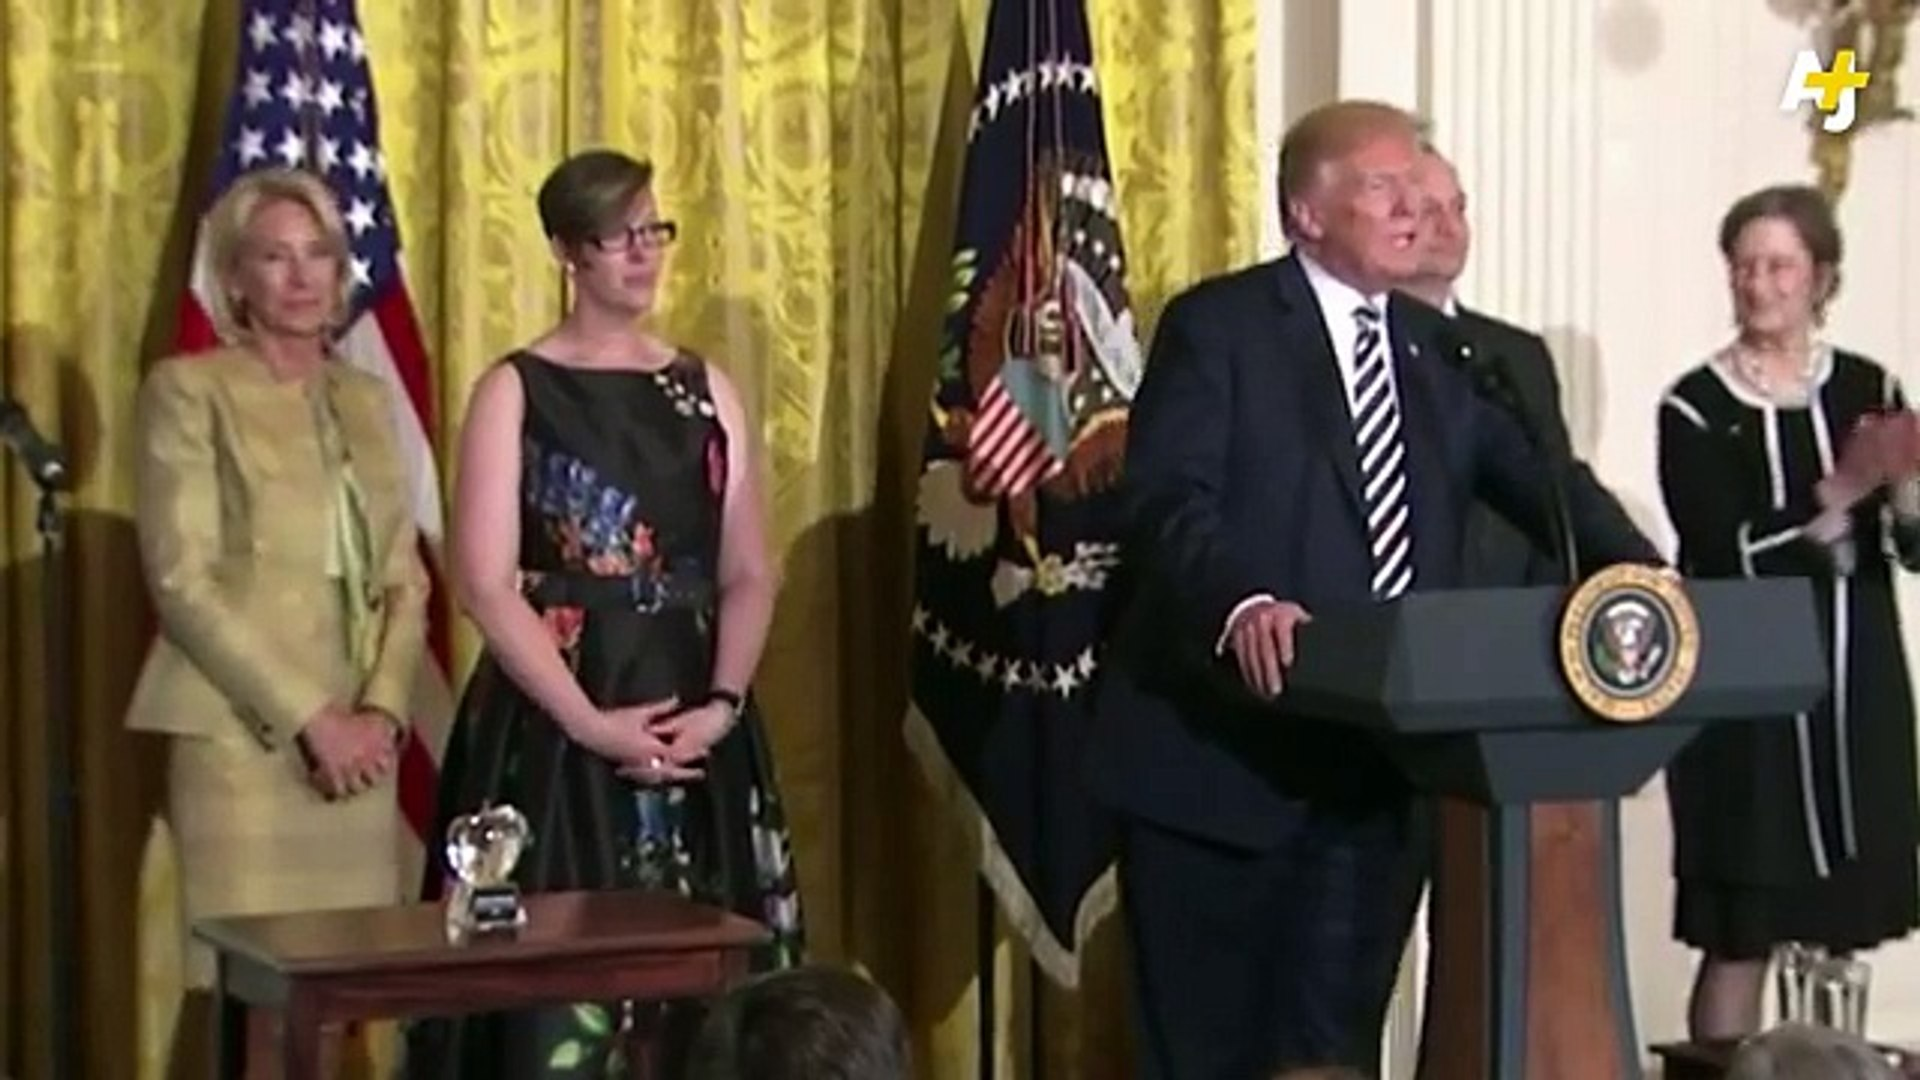 NOW: President Trump speaks at the National Teacher of the Year reception amid teacher strikes in se